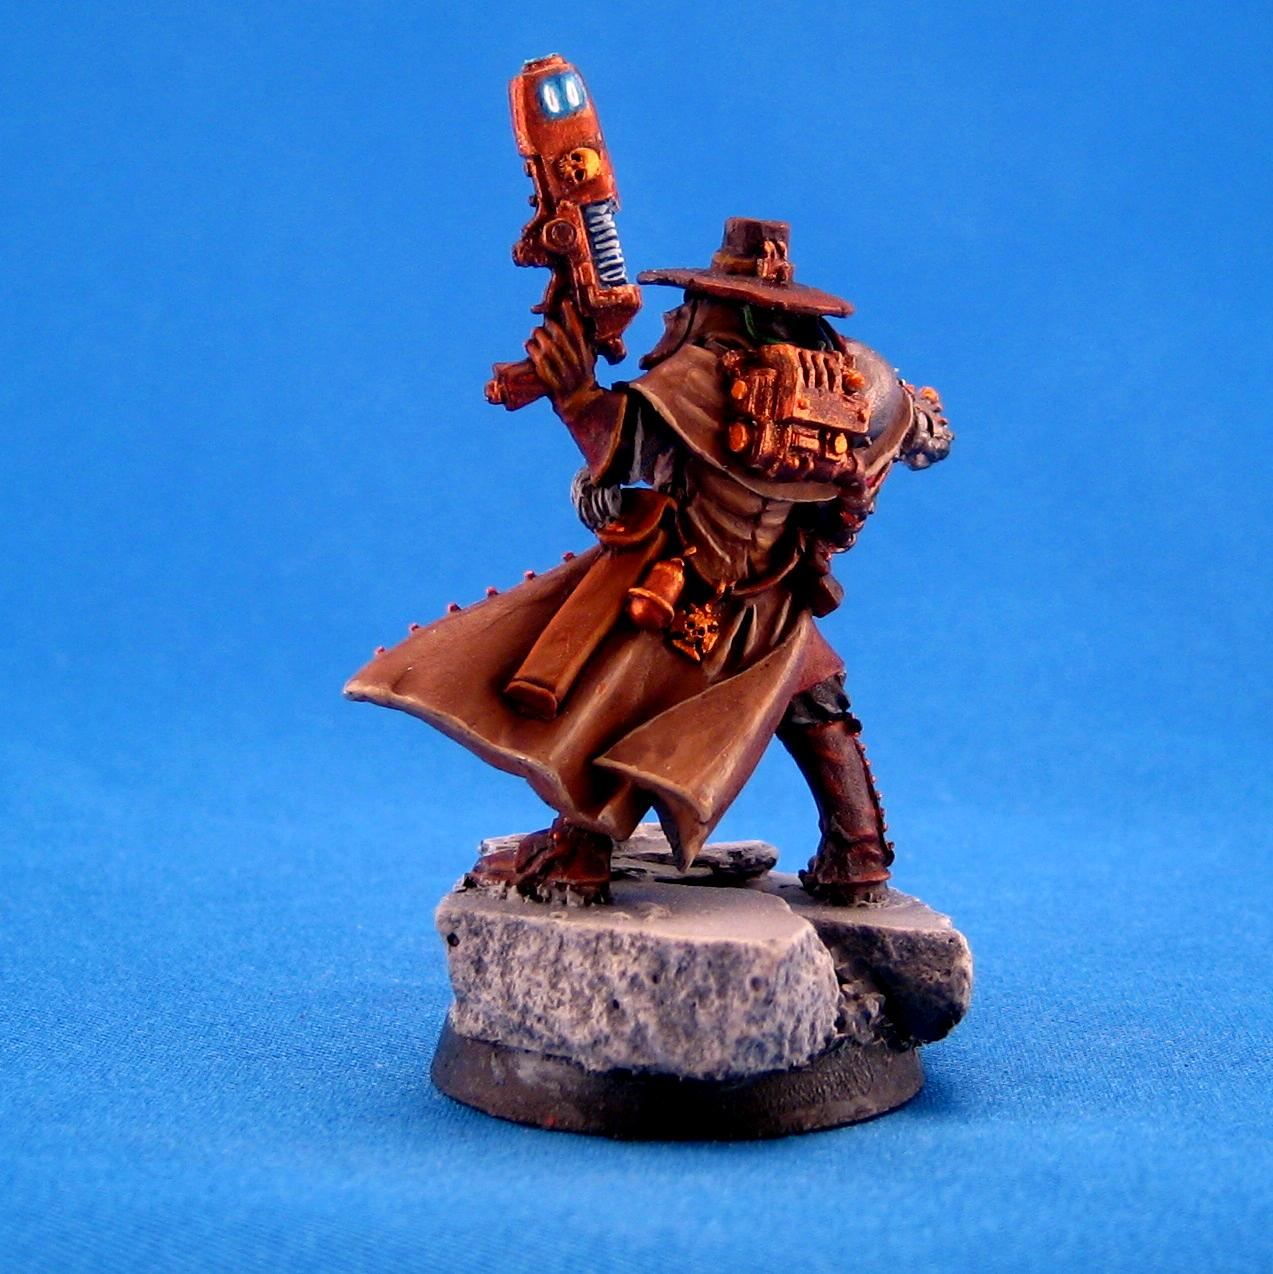 Gideon Lorr, Inquisition, Inquisitor, Inquisitor Lord, Ordo Hereticus, Warhammer 40,000, Witch Hunters